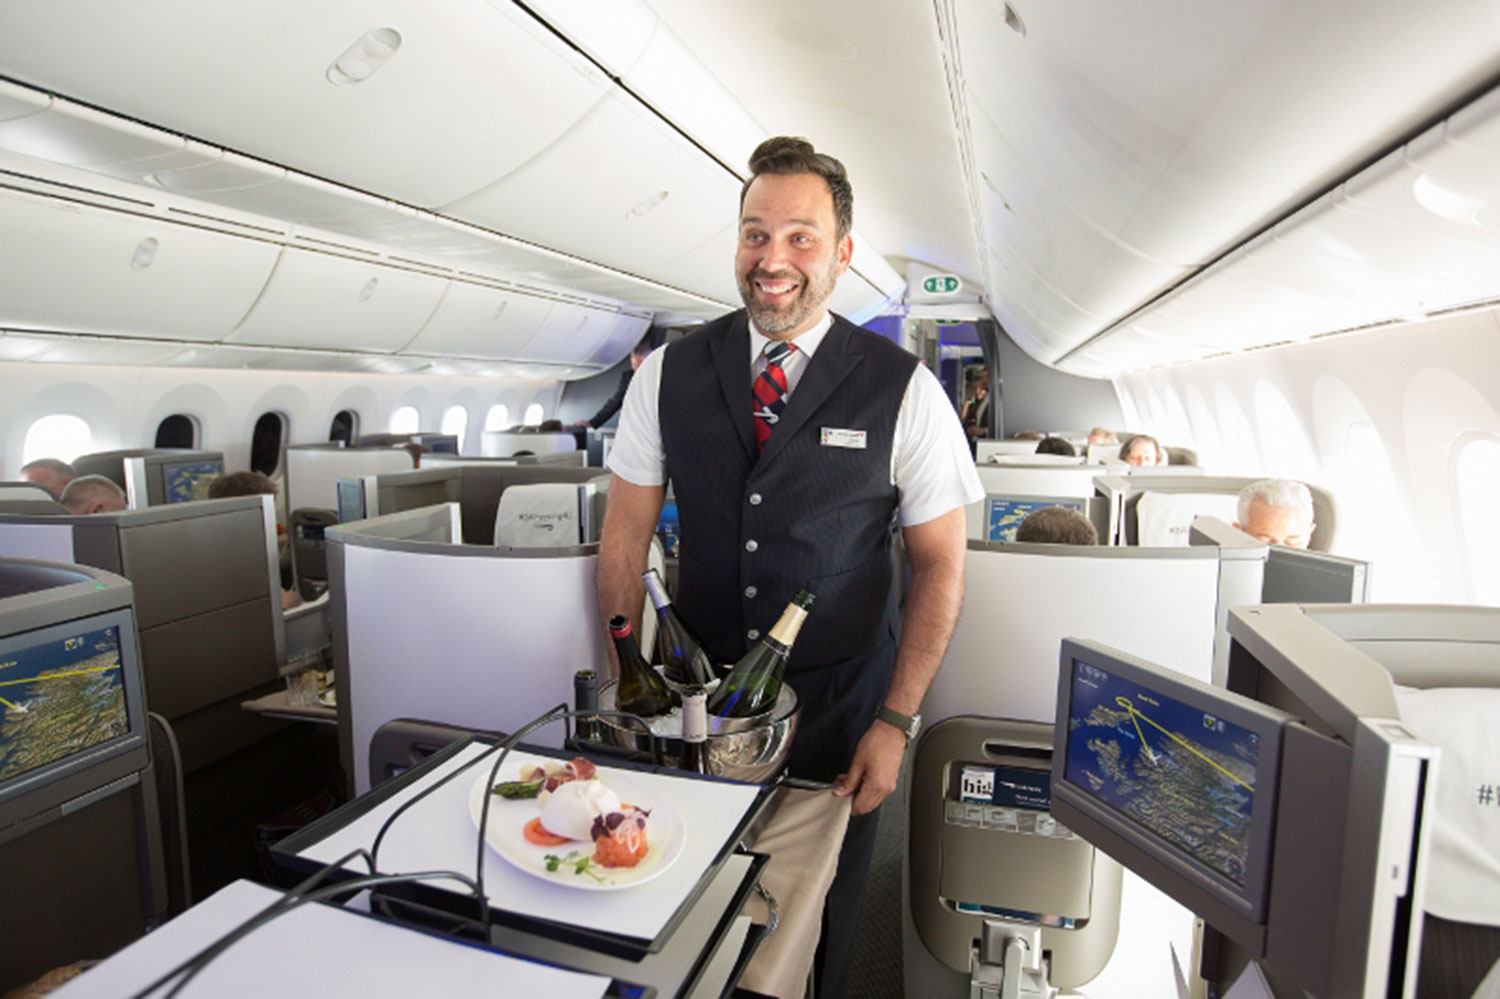 LONDON, UK: New Club World products onboard a special flight on a 787-9, which also marked the opening of First Wing, London Gatwick and Boston Lounges with media and social media influencers between London Gatwick and Heathrow on 05 April 2017(Picture